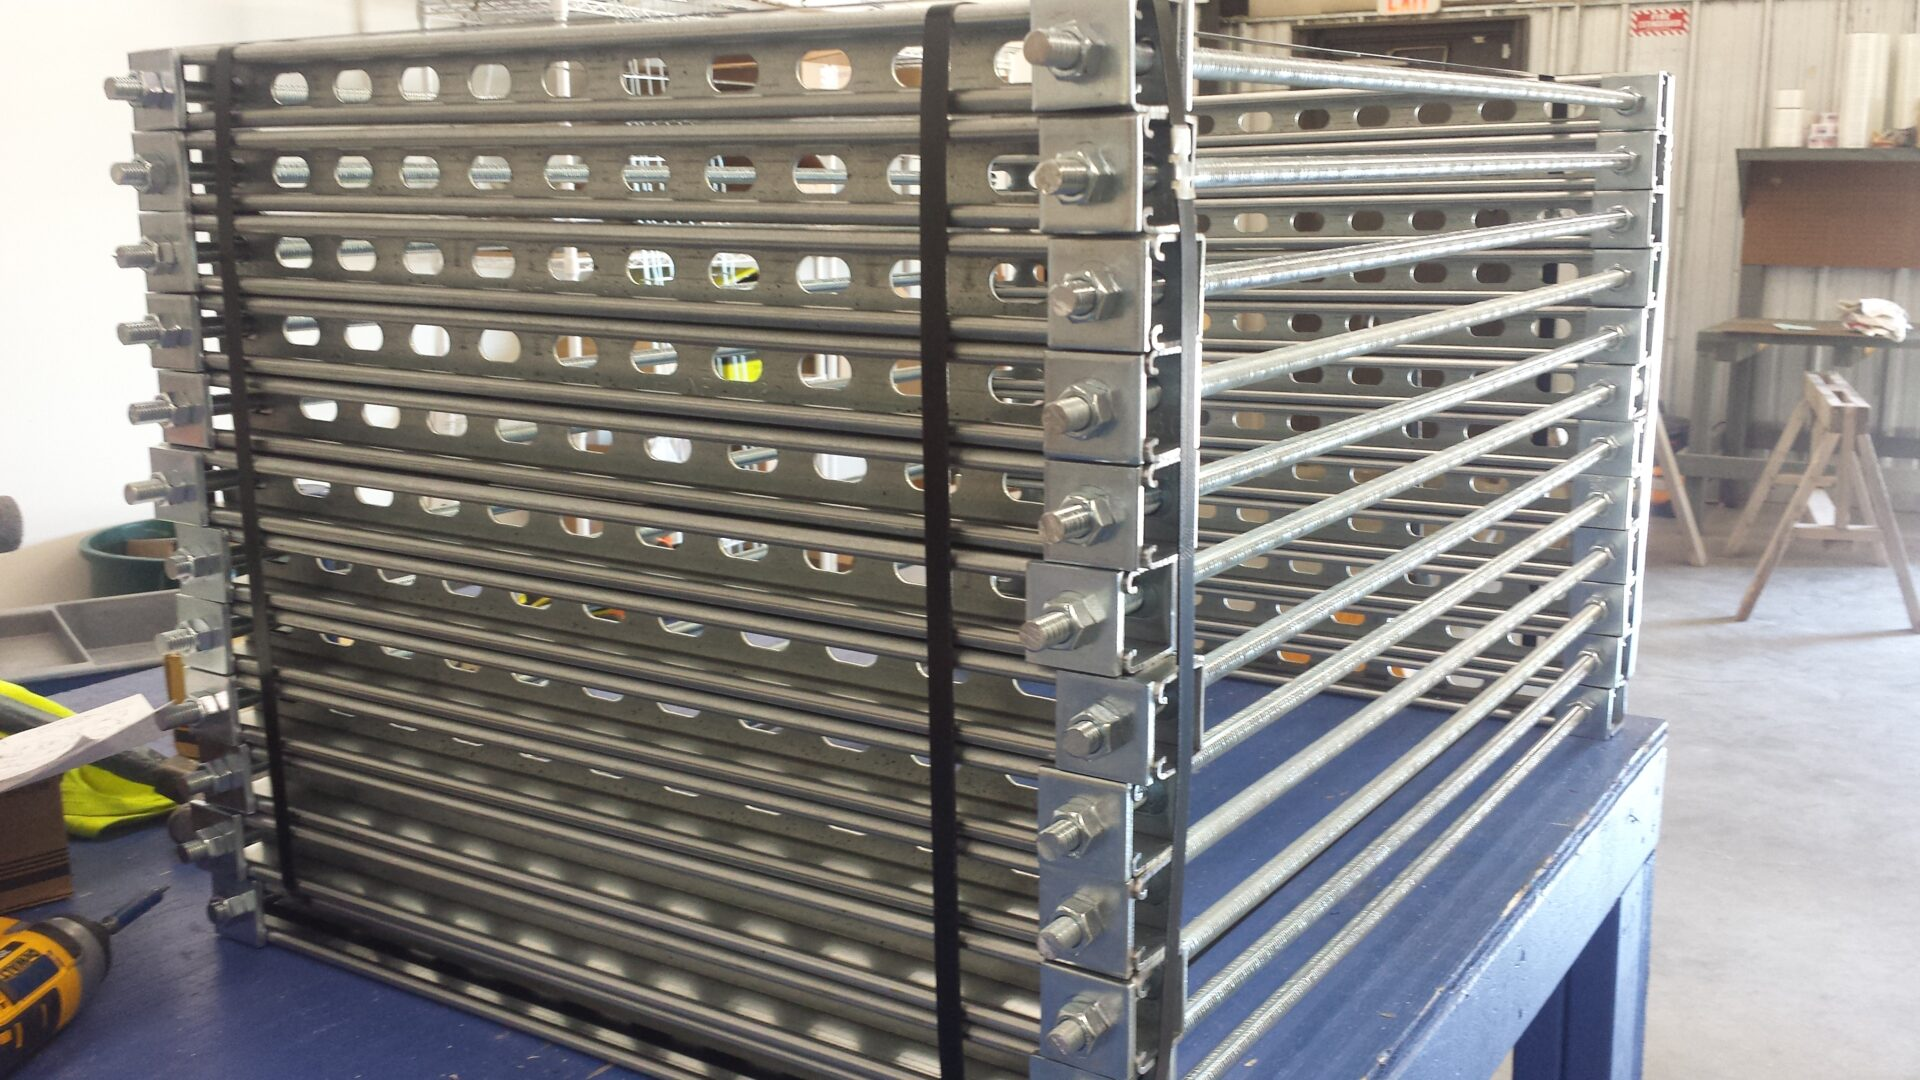 Prefabricated electrical panels